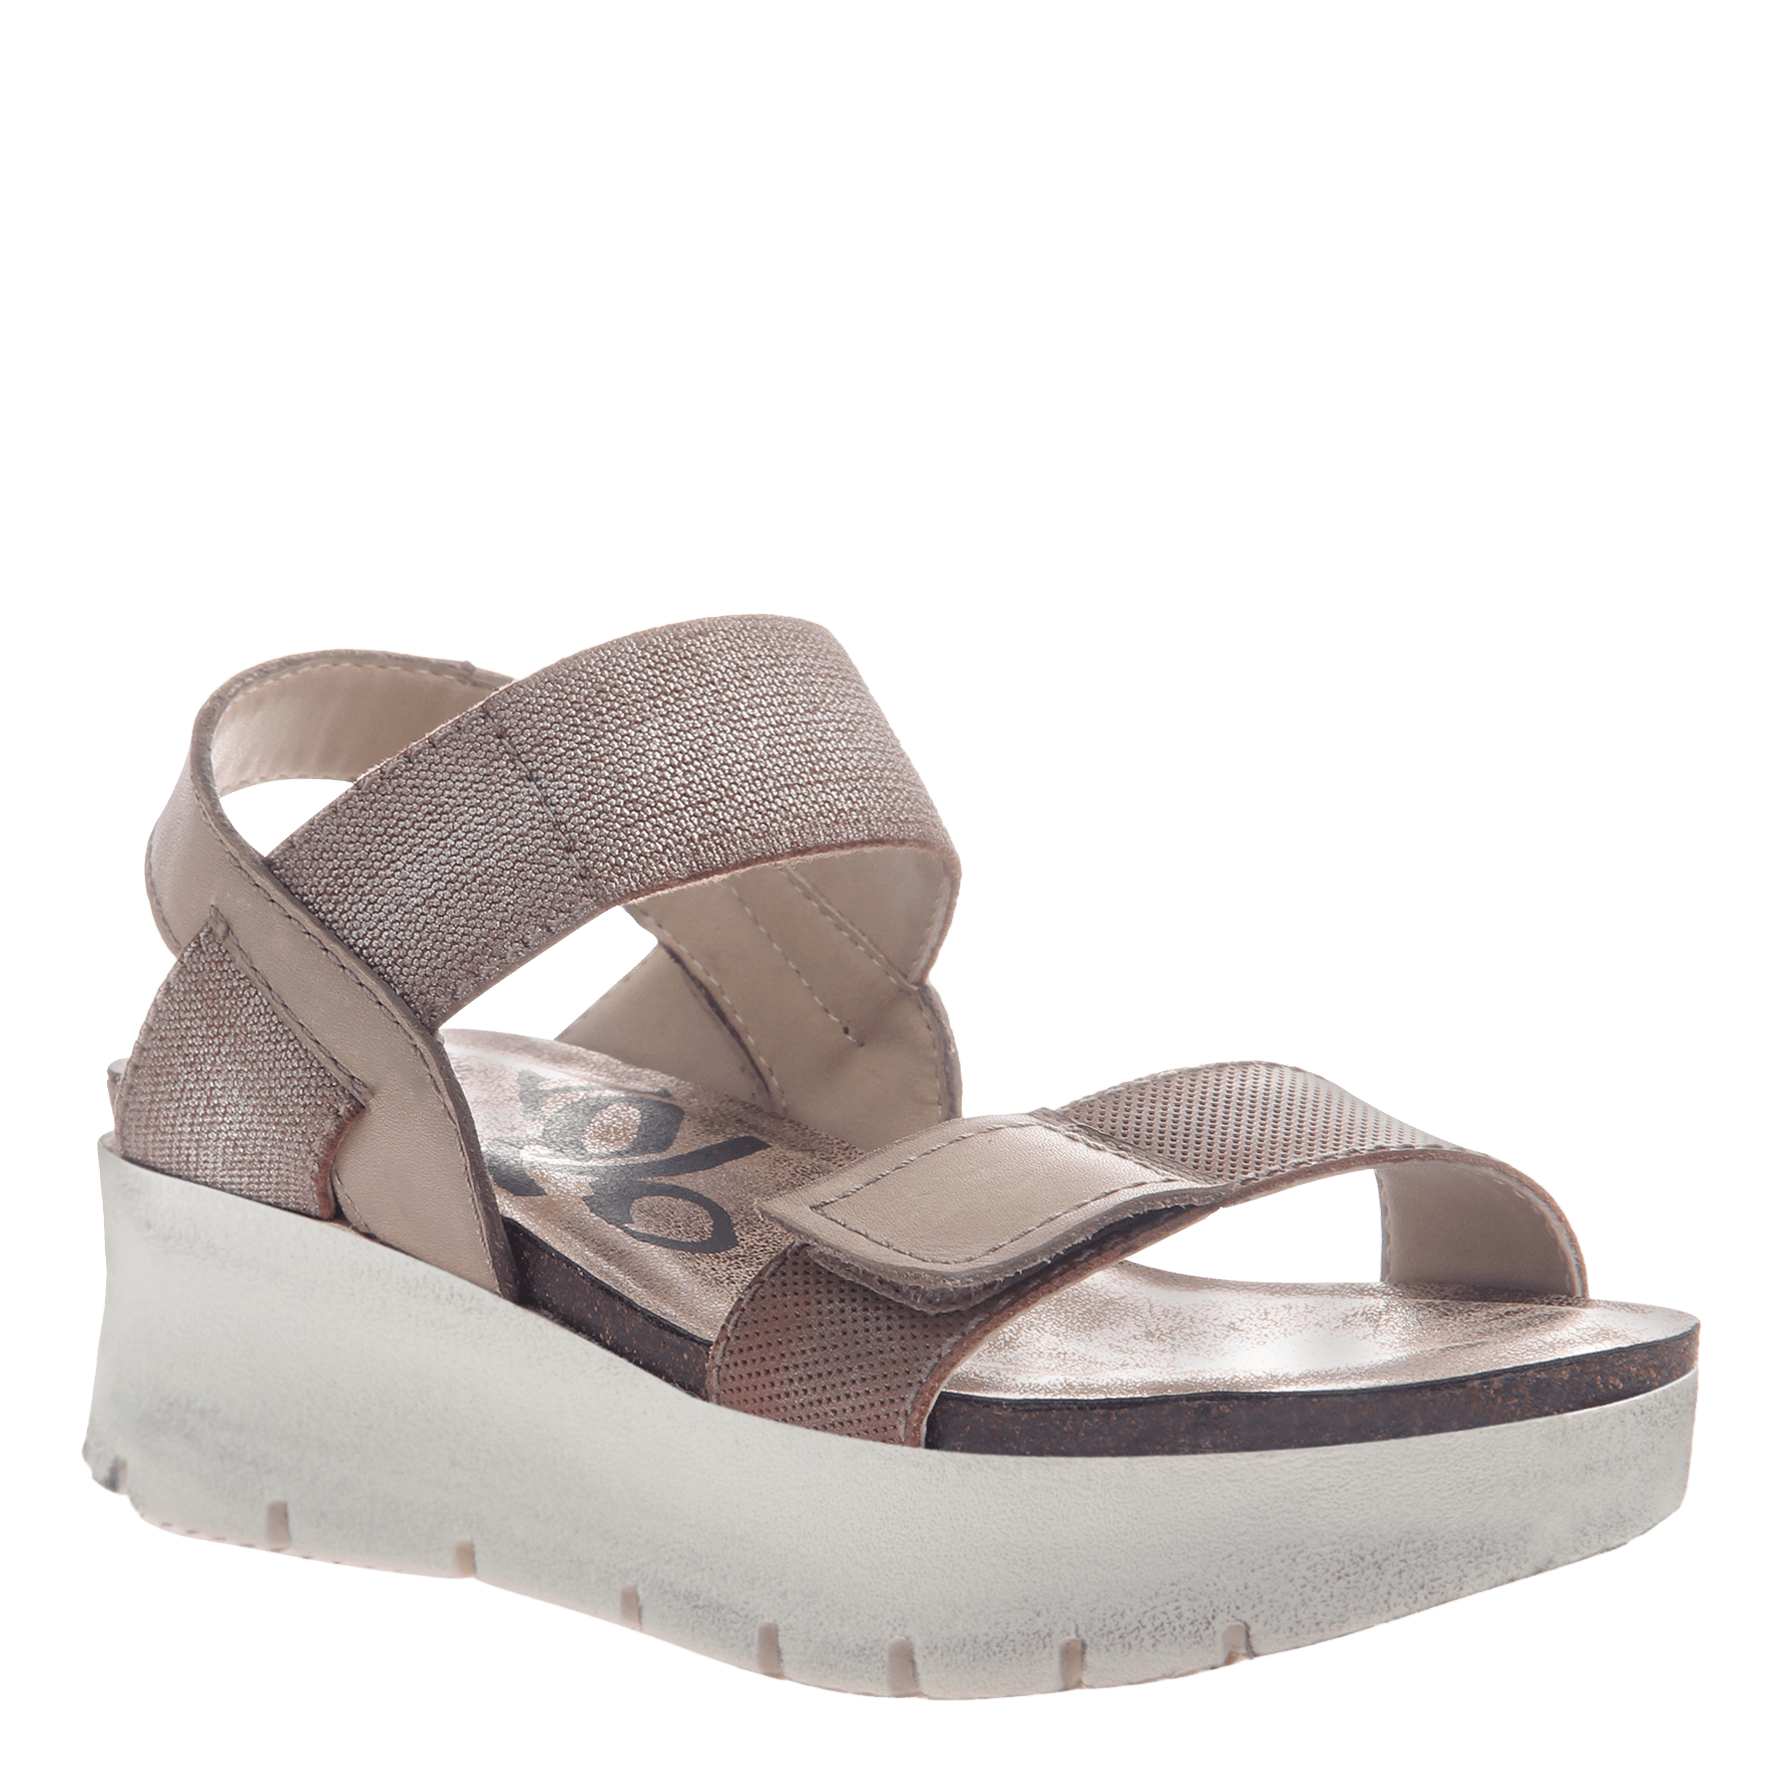 Nova women's sandal in silver